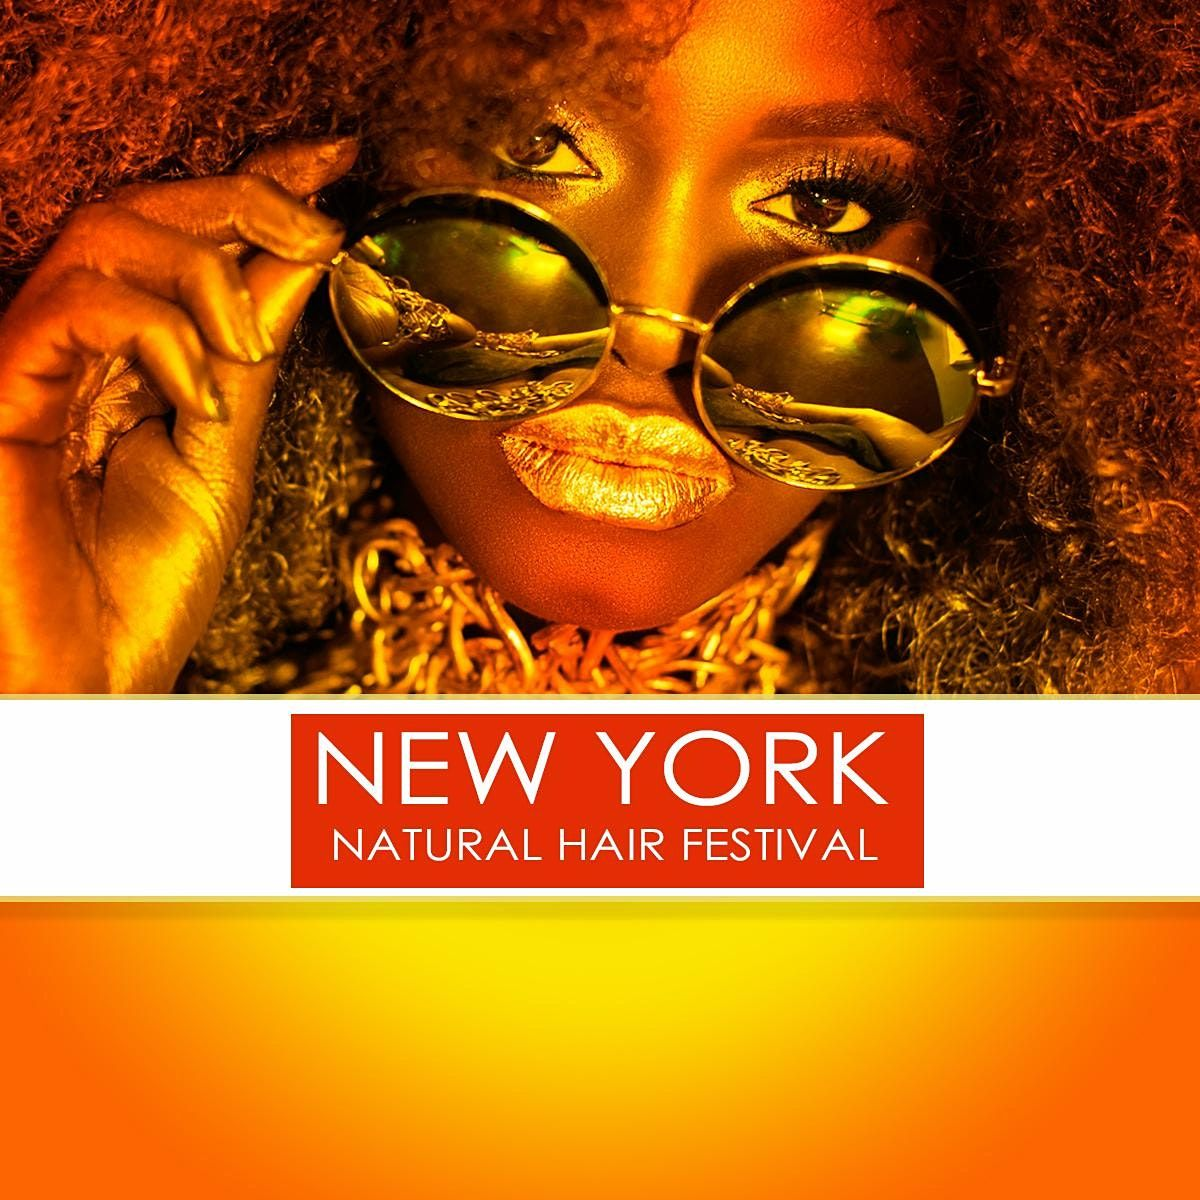 @NATURALHAIRFESTIVAL NYC 2022, 27 November | Event in New York | AllEvents.in